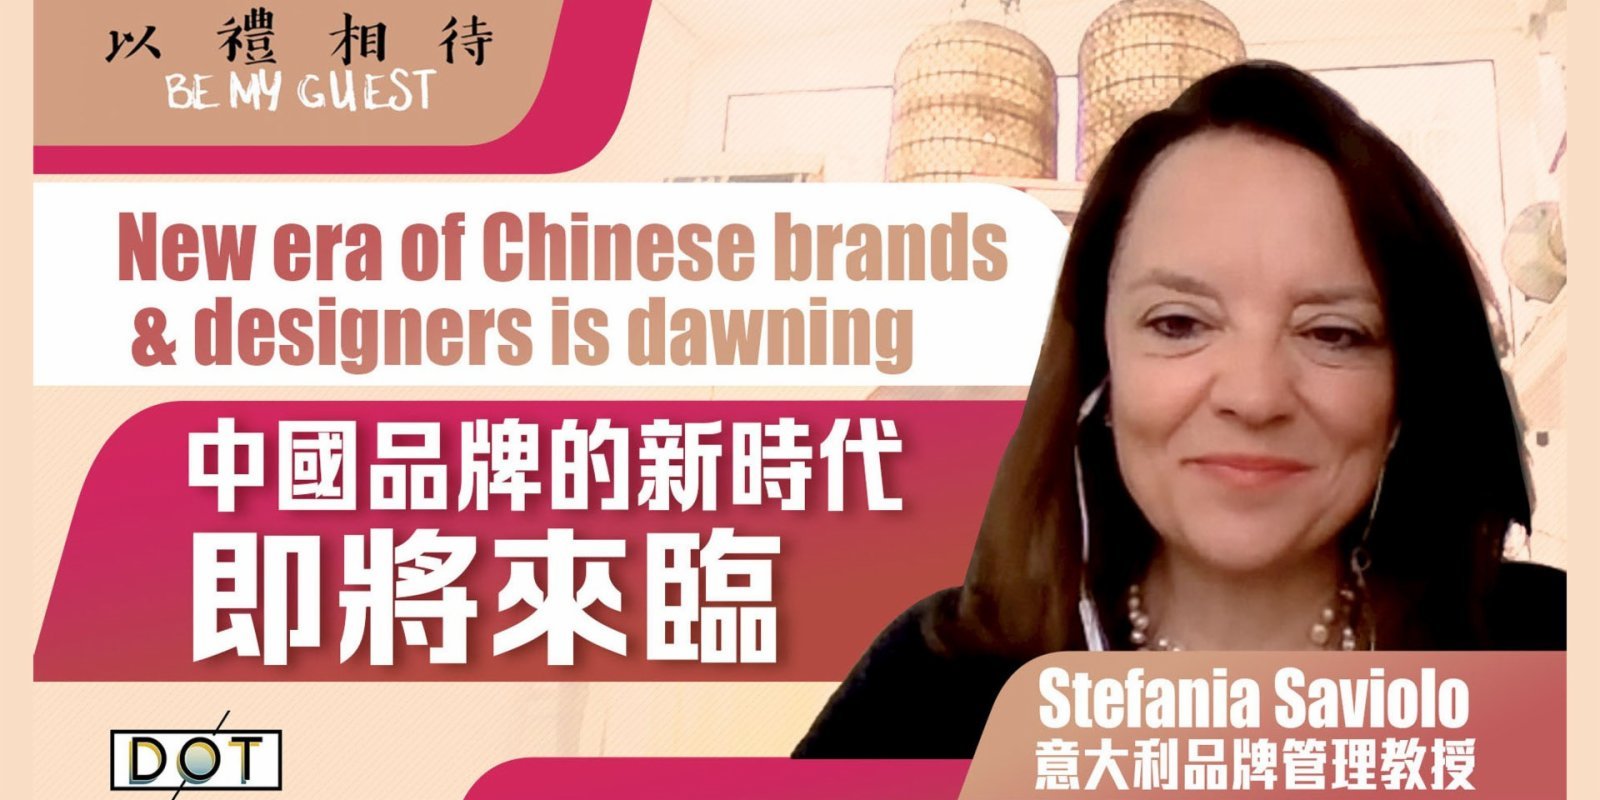 Be My Guest | Stefania Saviolo: New era of Chinese brands & designers is dawning